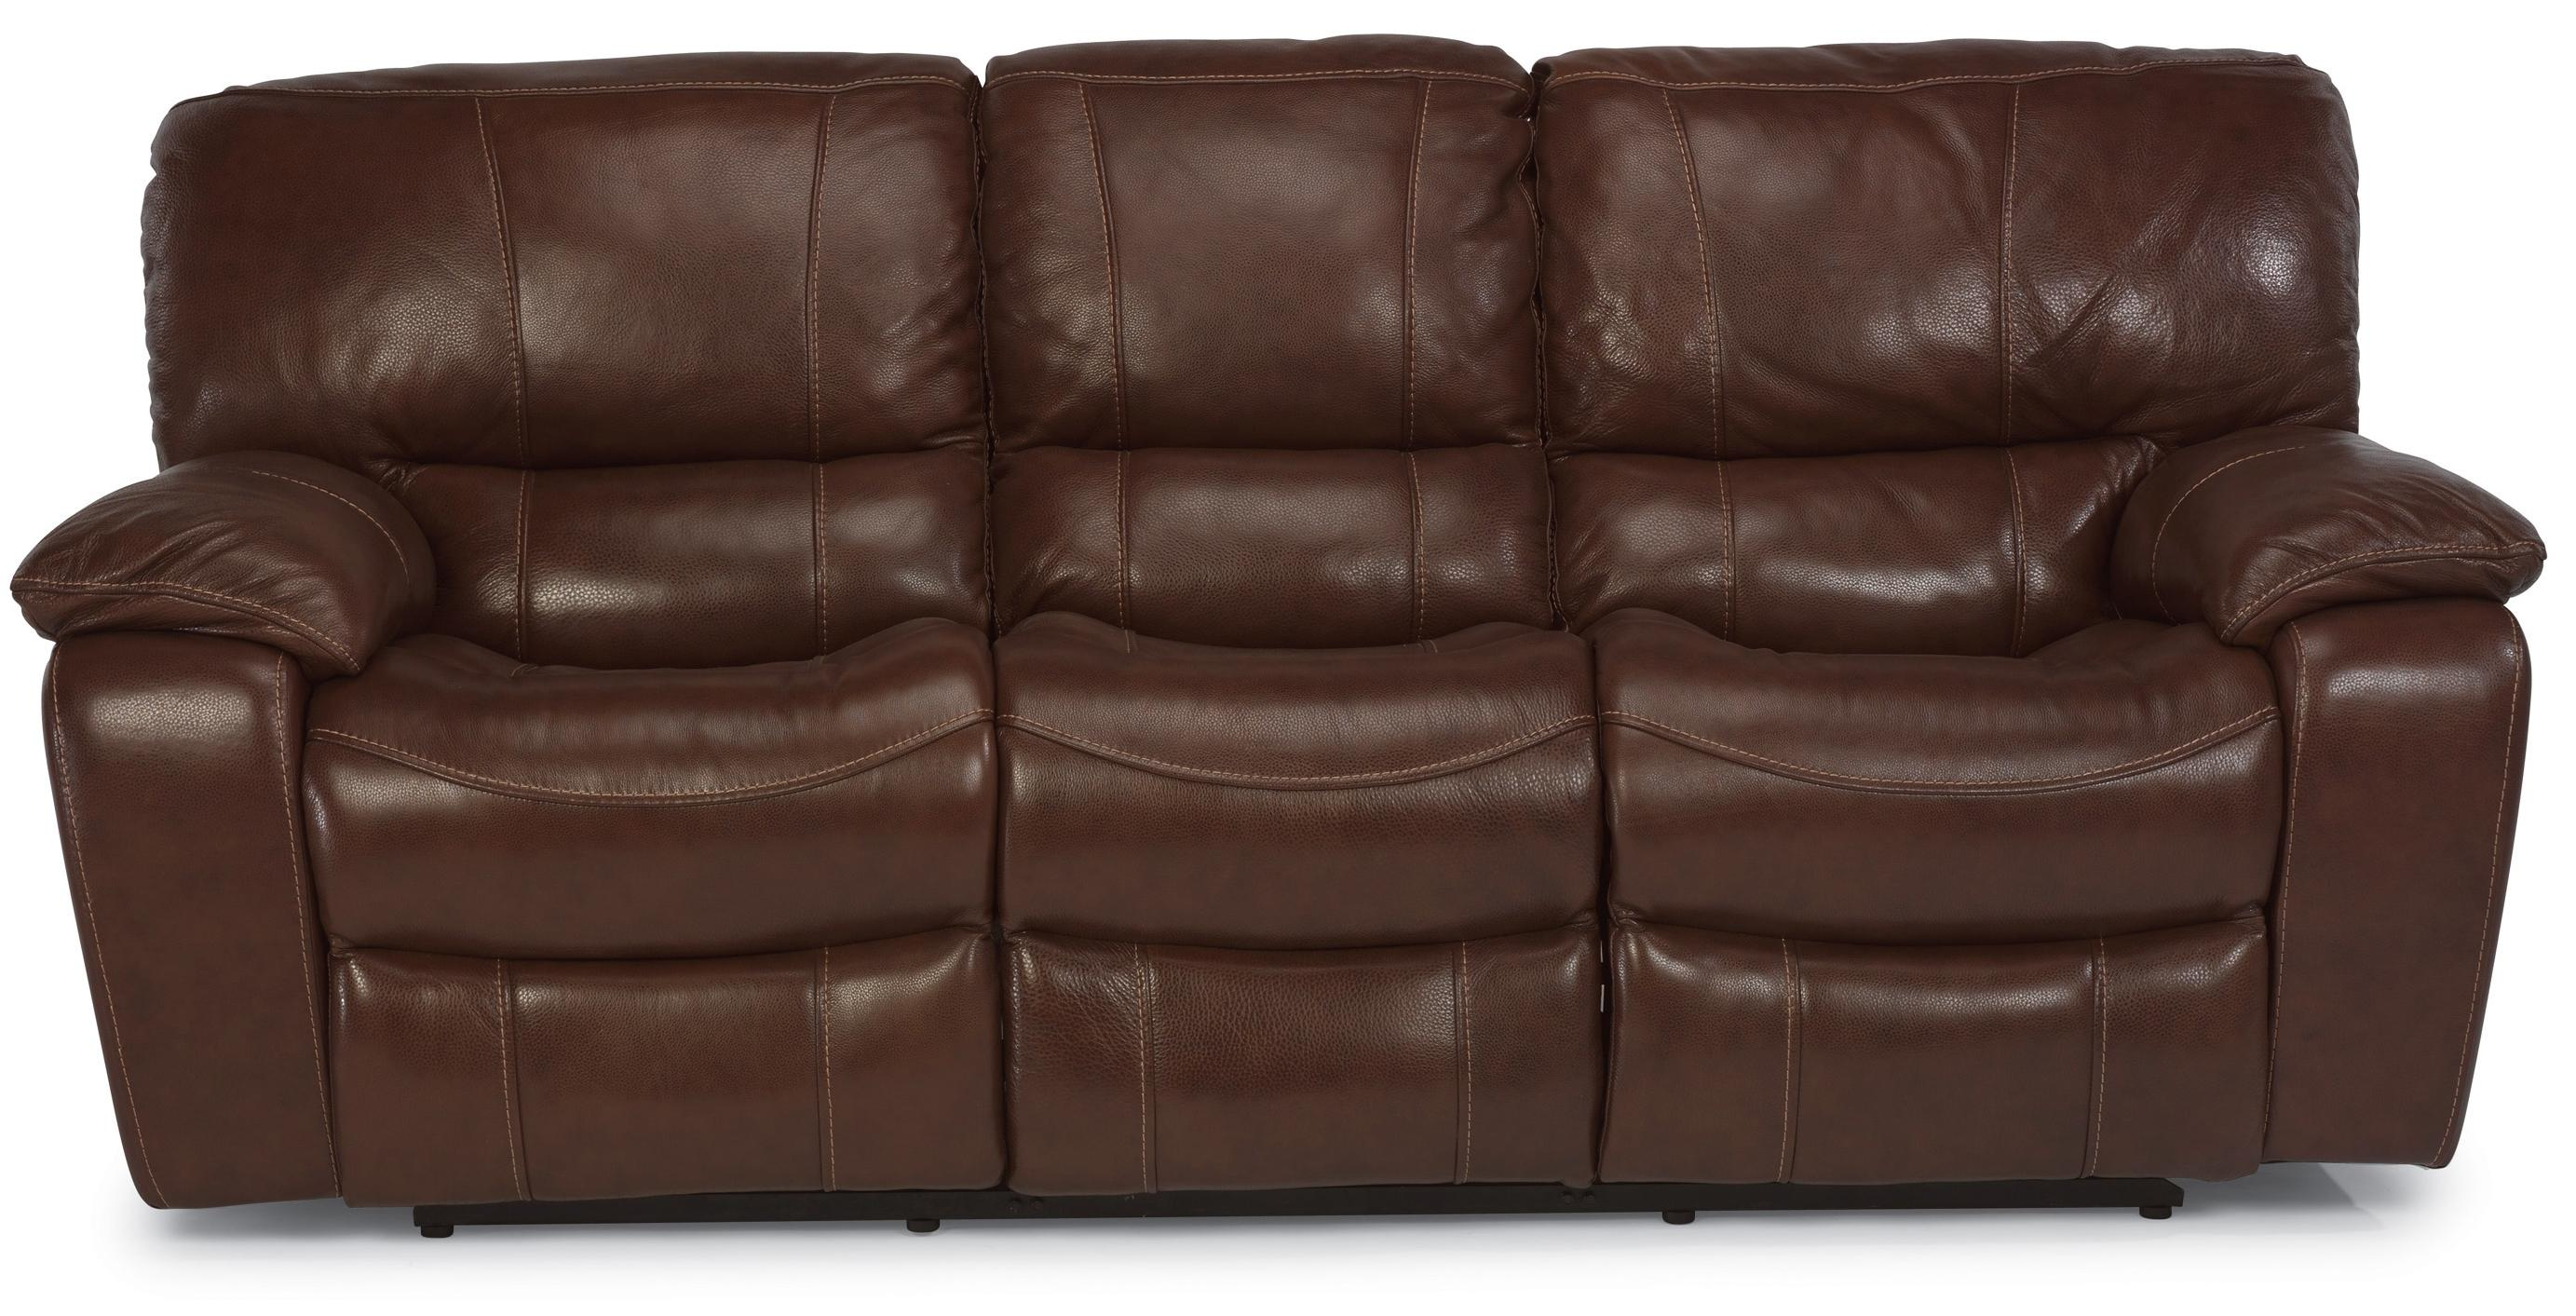 Flexsteel Latitudes - Grandview Reclining Sofa - Item Number: 1241-62